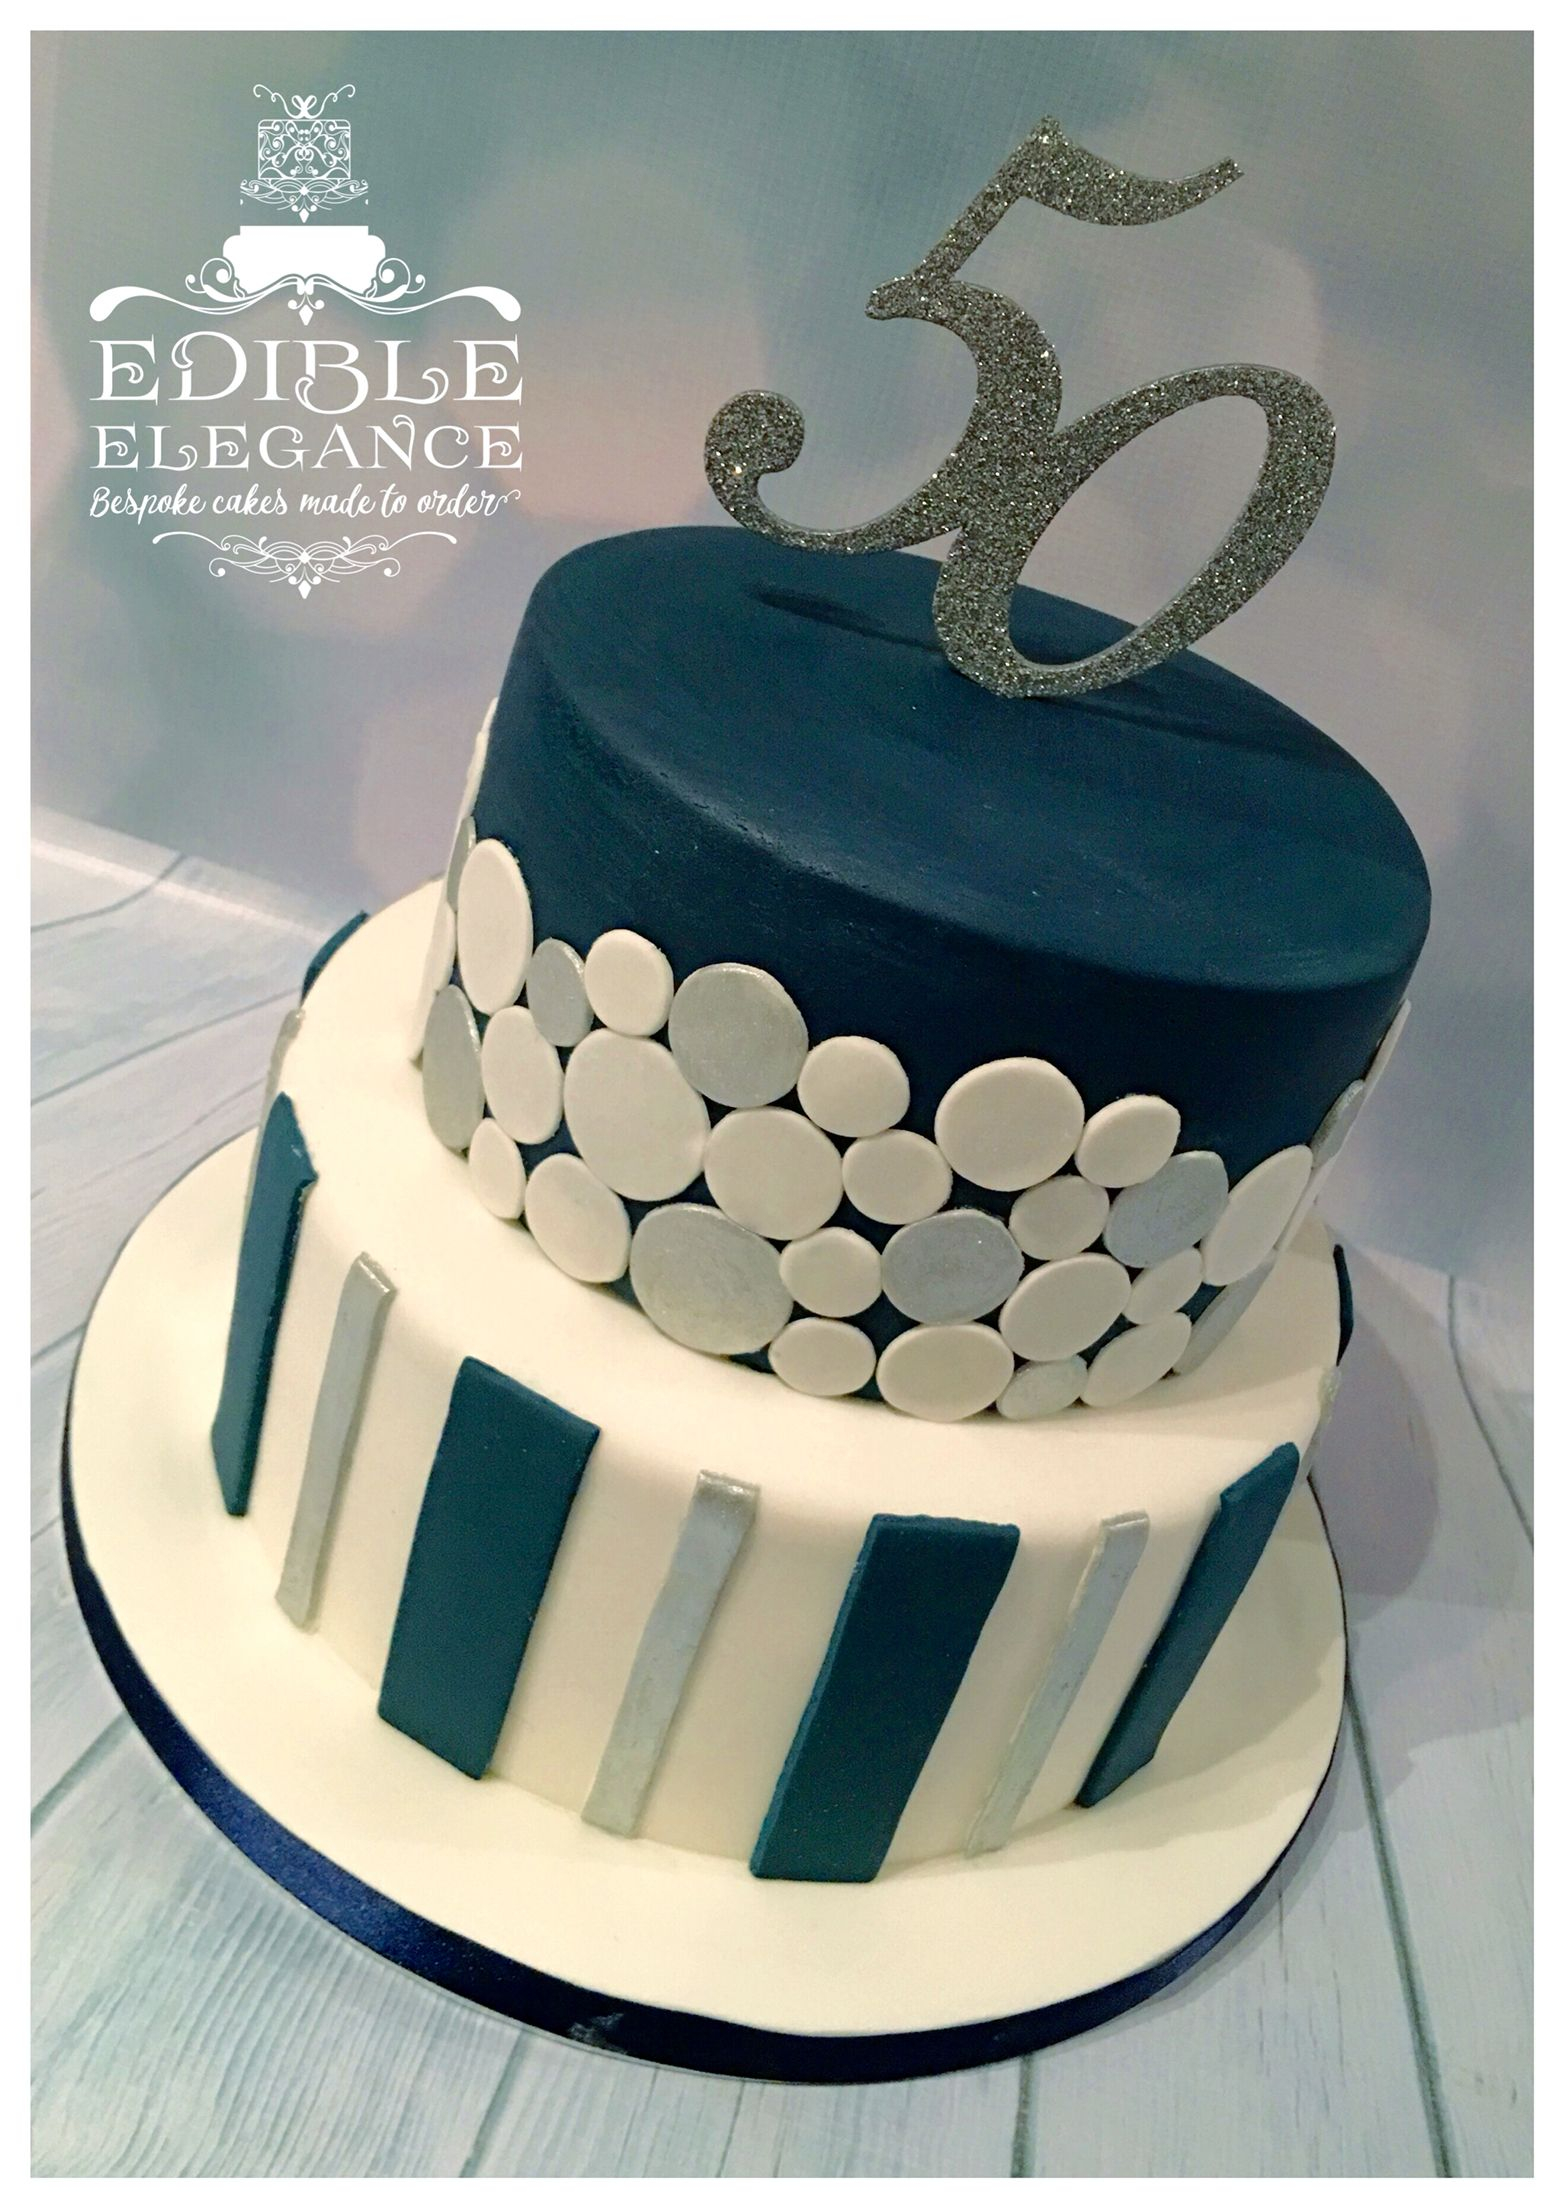 Birthday Cake Designs For Adults 50th Birthday Cake Contemporary Design In Masculine Blue White And